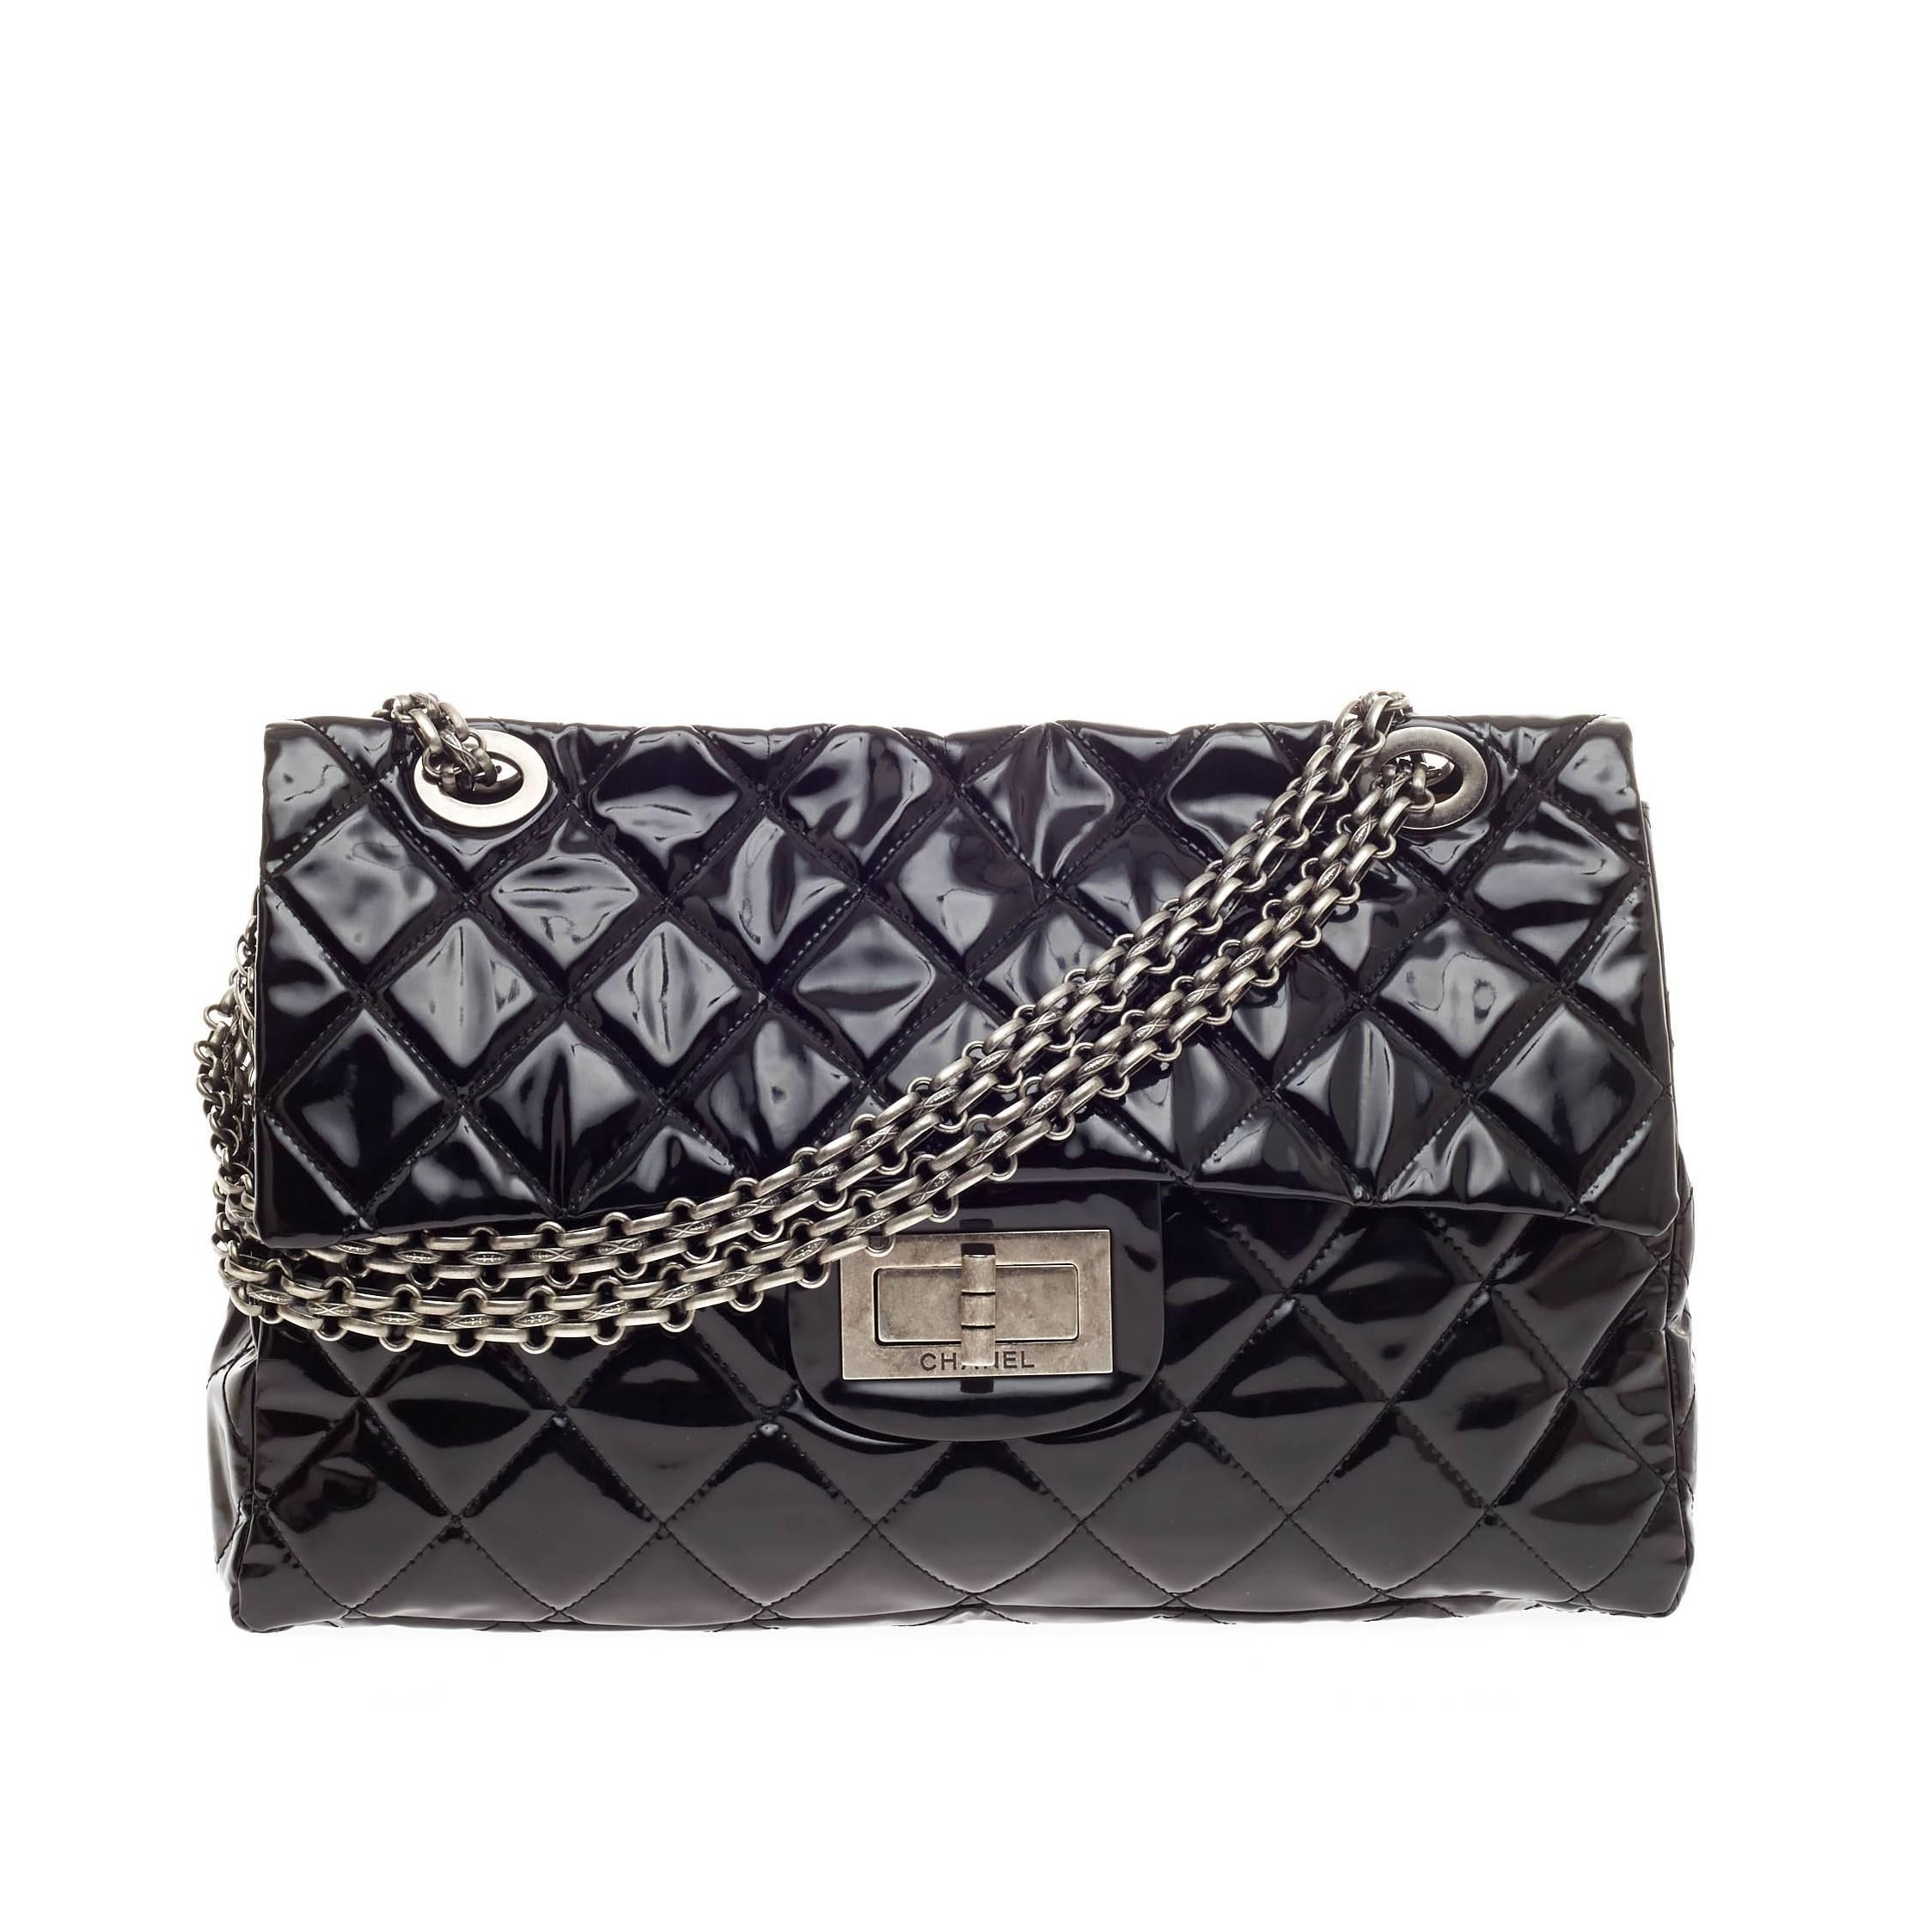 a9b37aebe4d9 Chanel Reissue 2.55 Quilted PVC XXL at 1stdibs